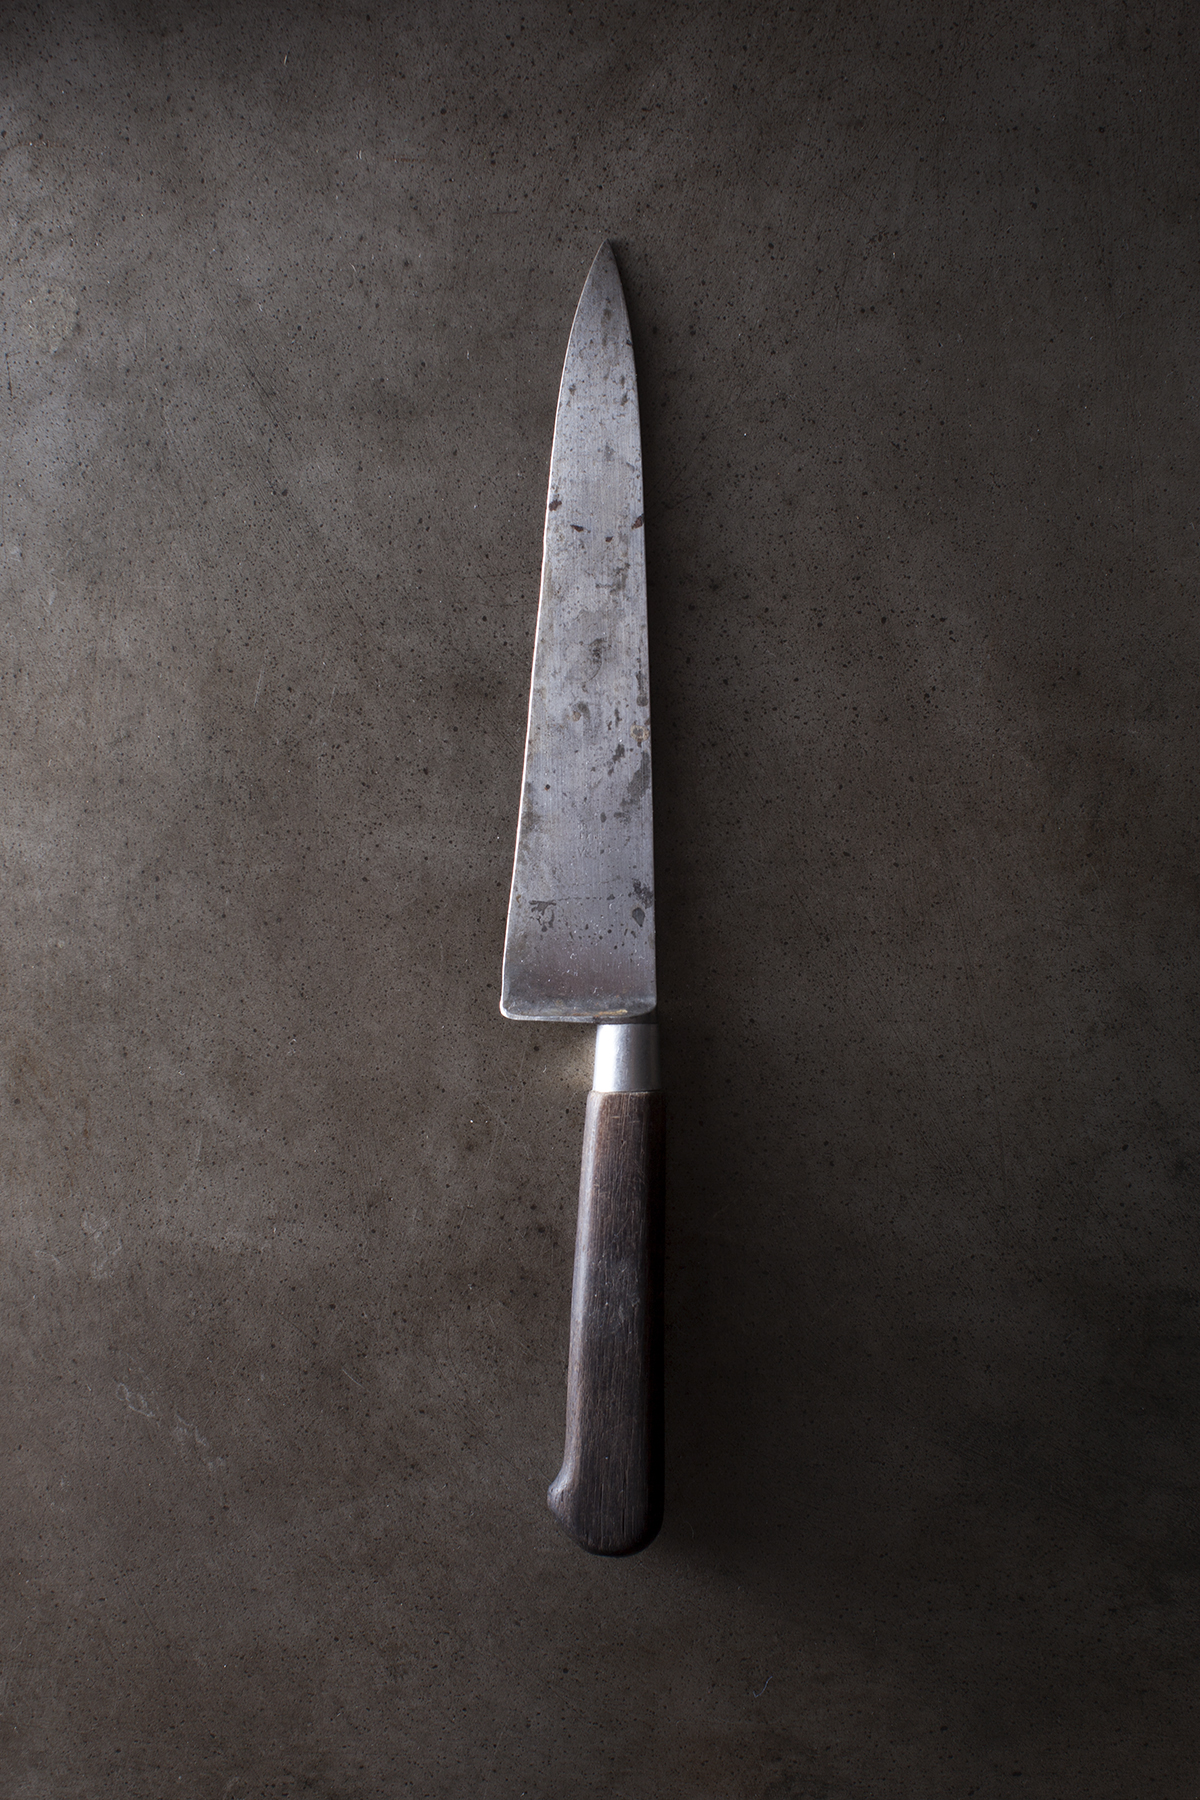 Katie Newburn | San Francisco Bay Area Food and Lifestyle Photographer | Still Life of Knife